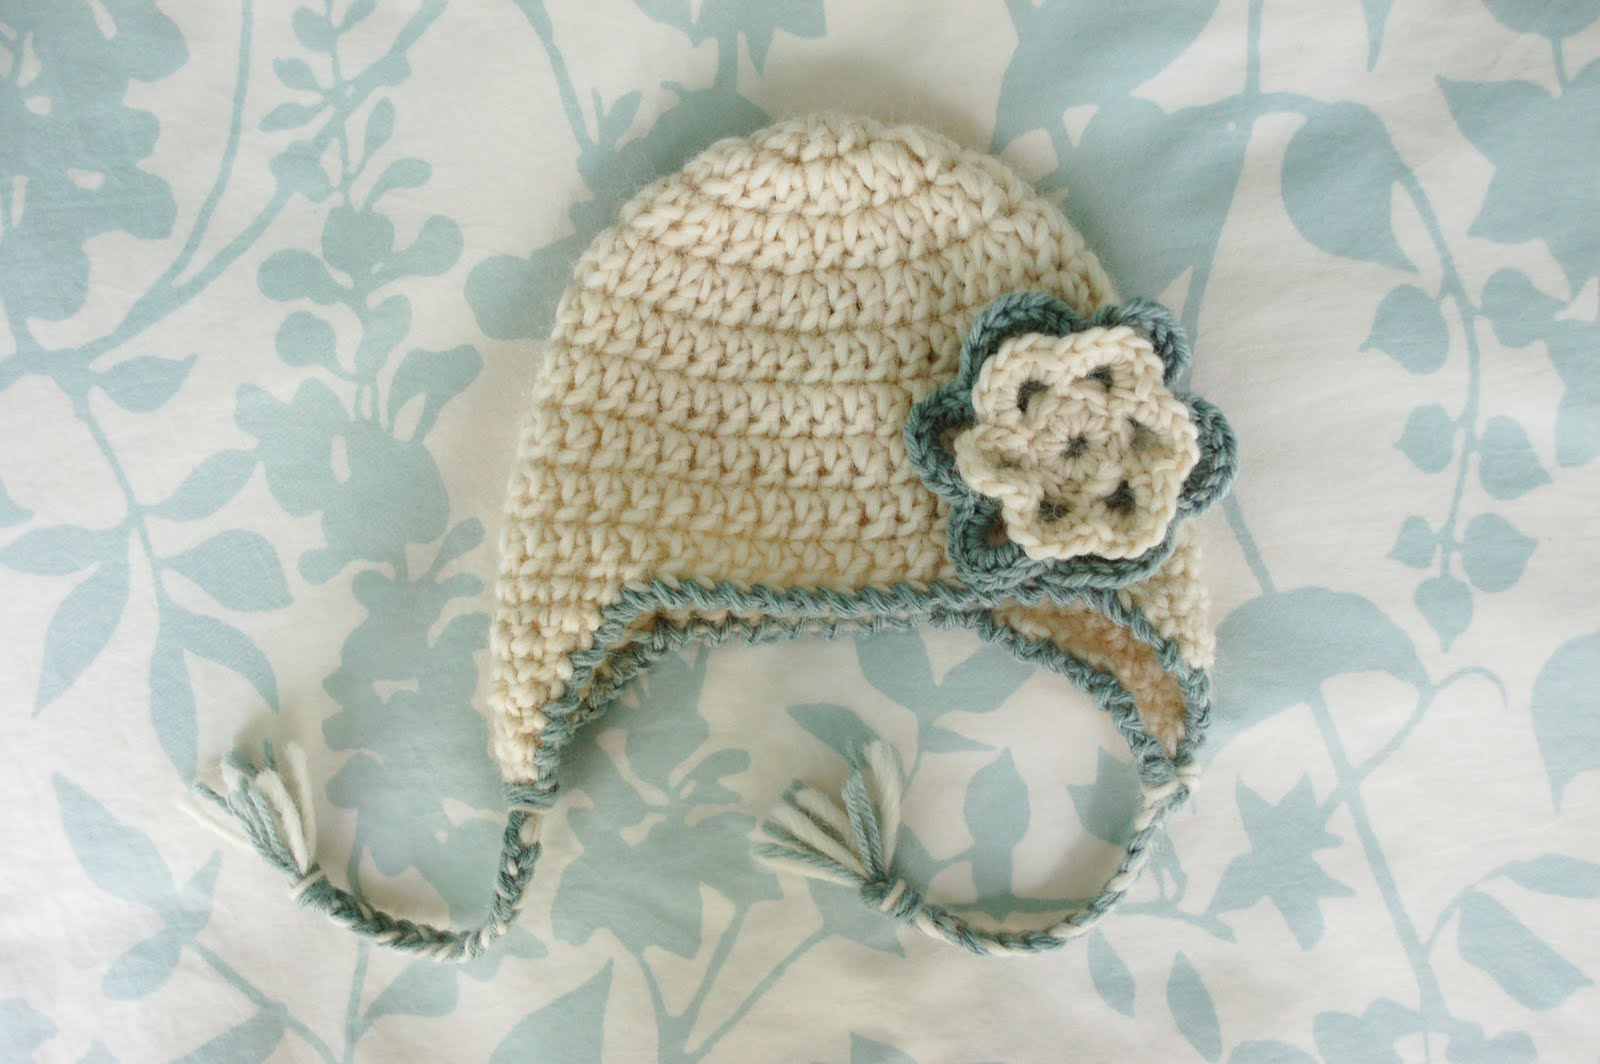 Free Crochet Patterns For A Baby Blanket : Alli Crafts: Free Pattern: Baby Earflap Hat - Newborn